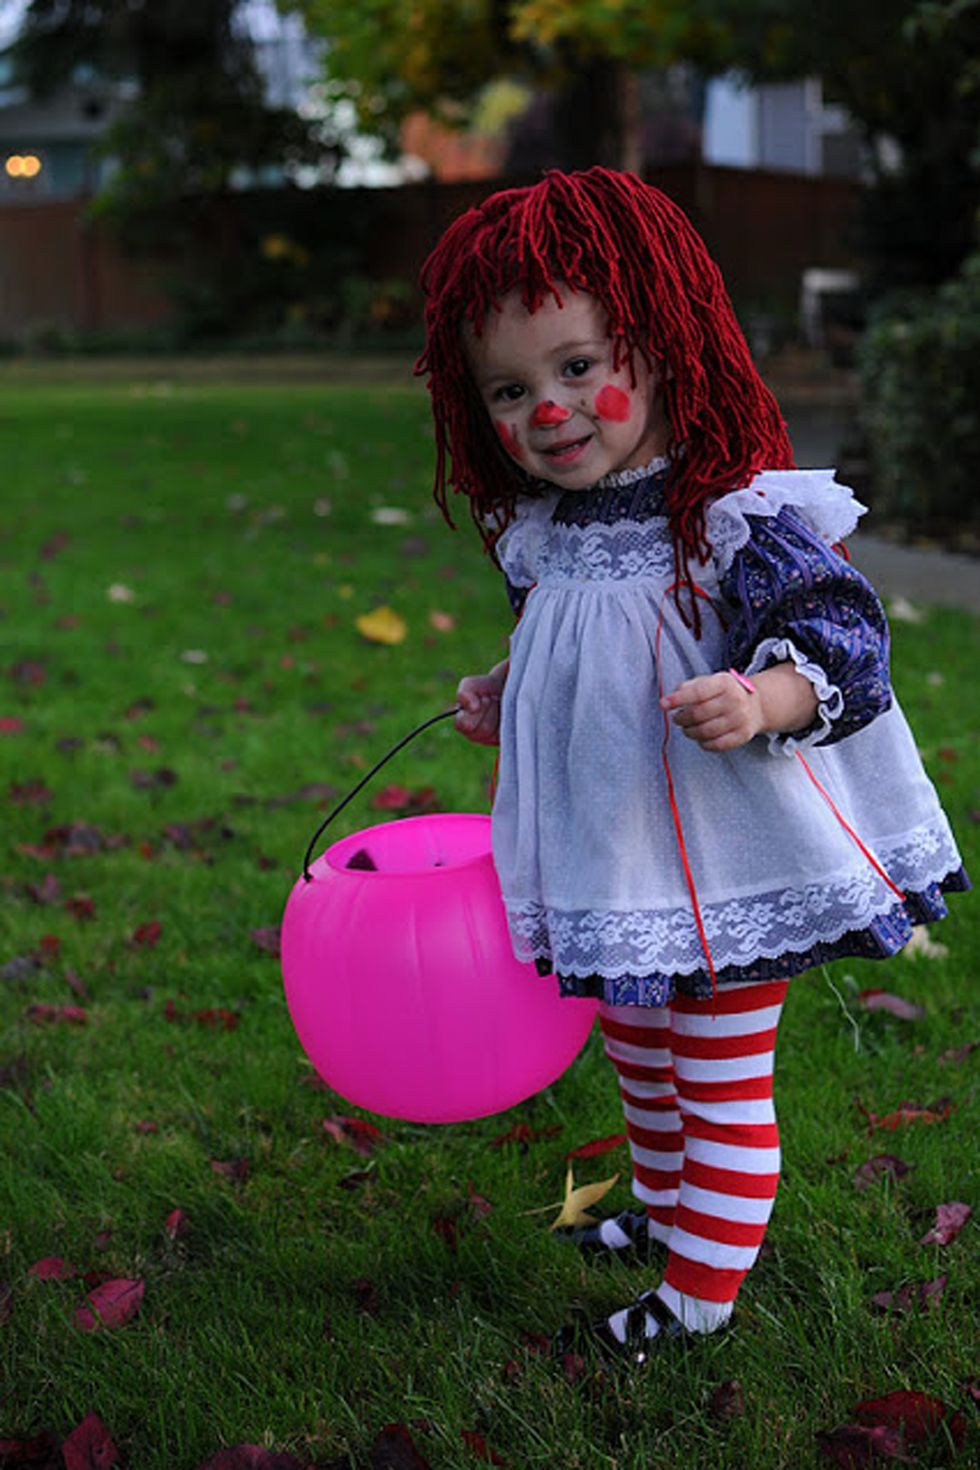 homemade halloween costumes  sc 1 st  Good Housekeeping & 30 Genius Homemade Halloween Costumes for Adults and Kids - Cool DIY ...